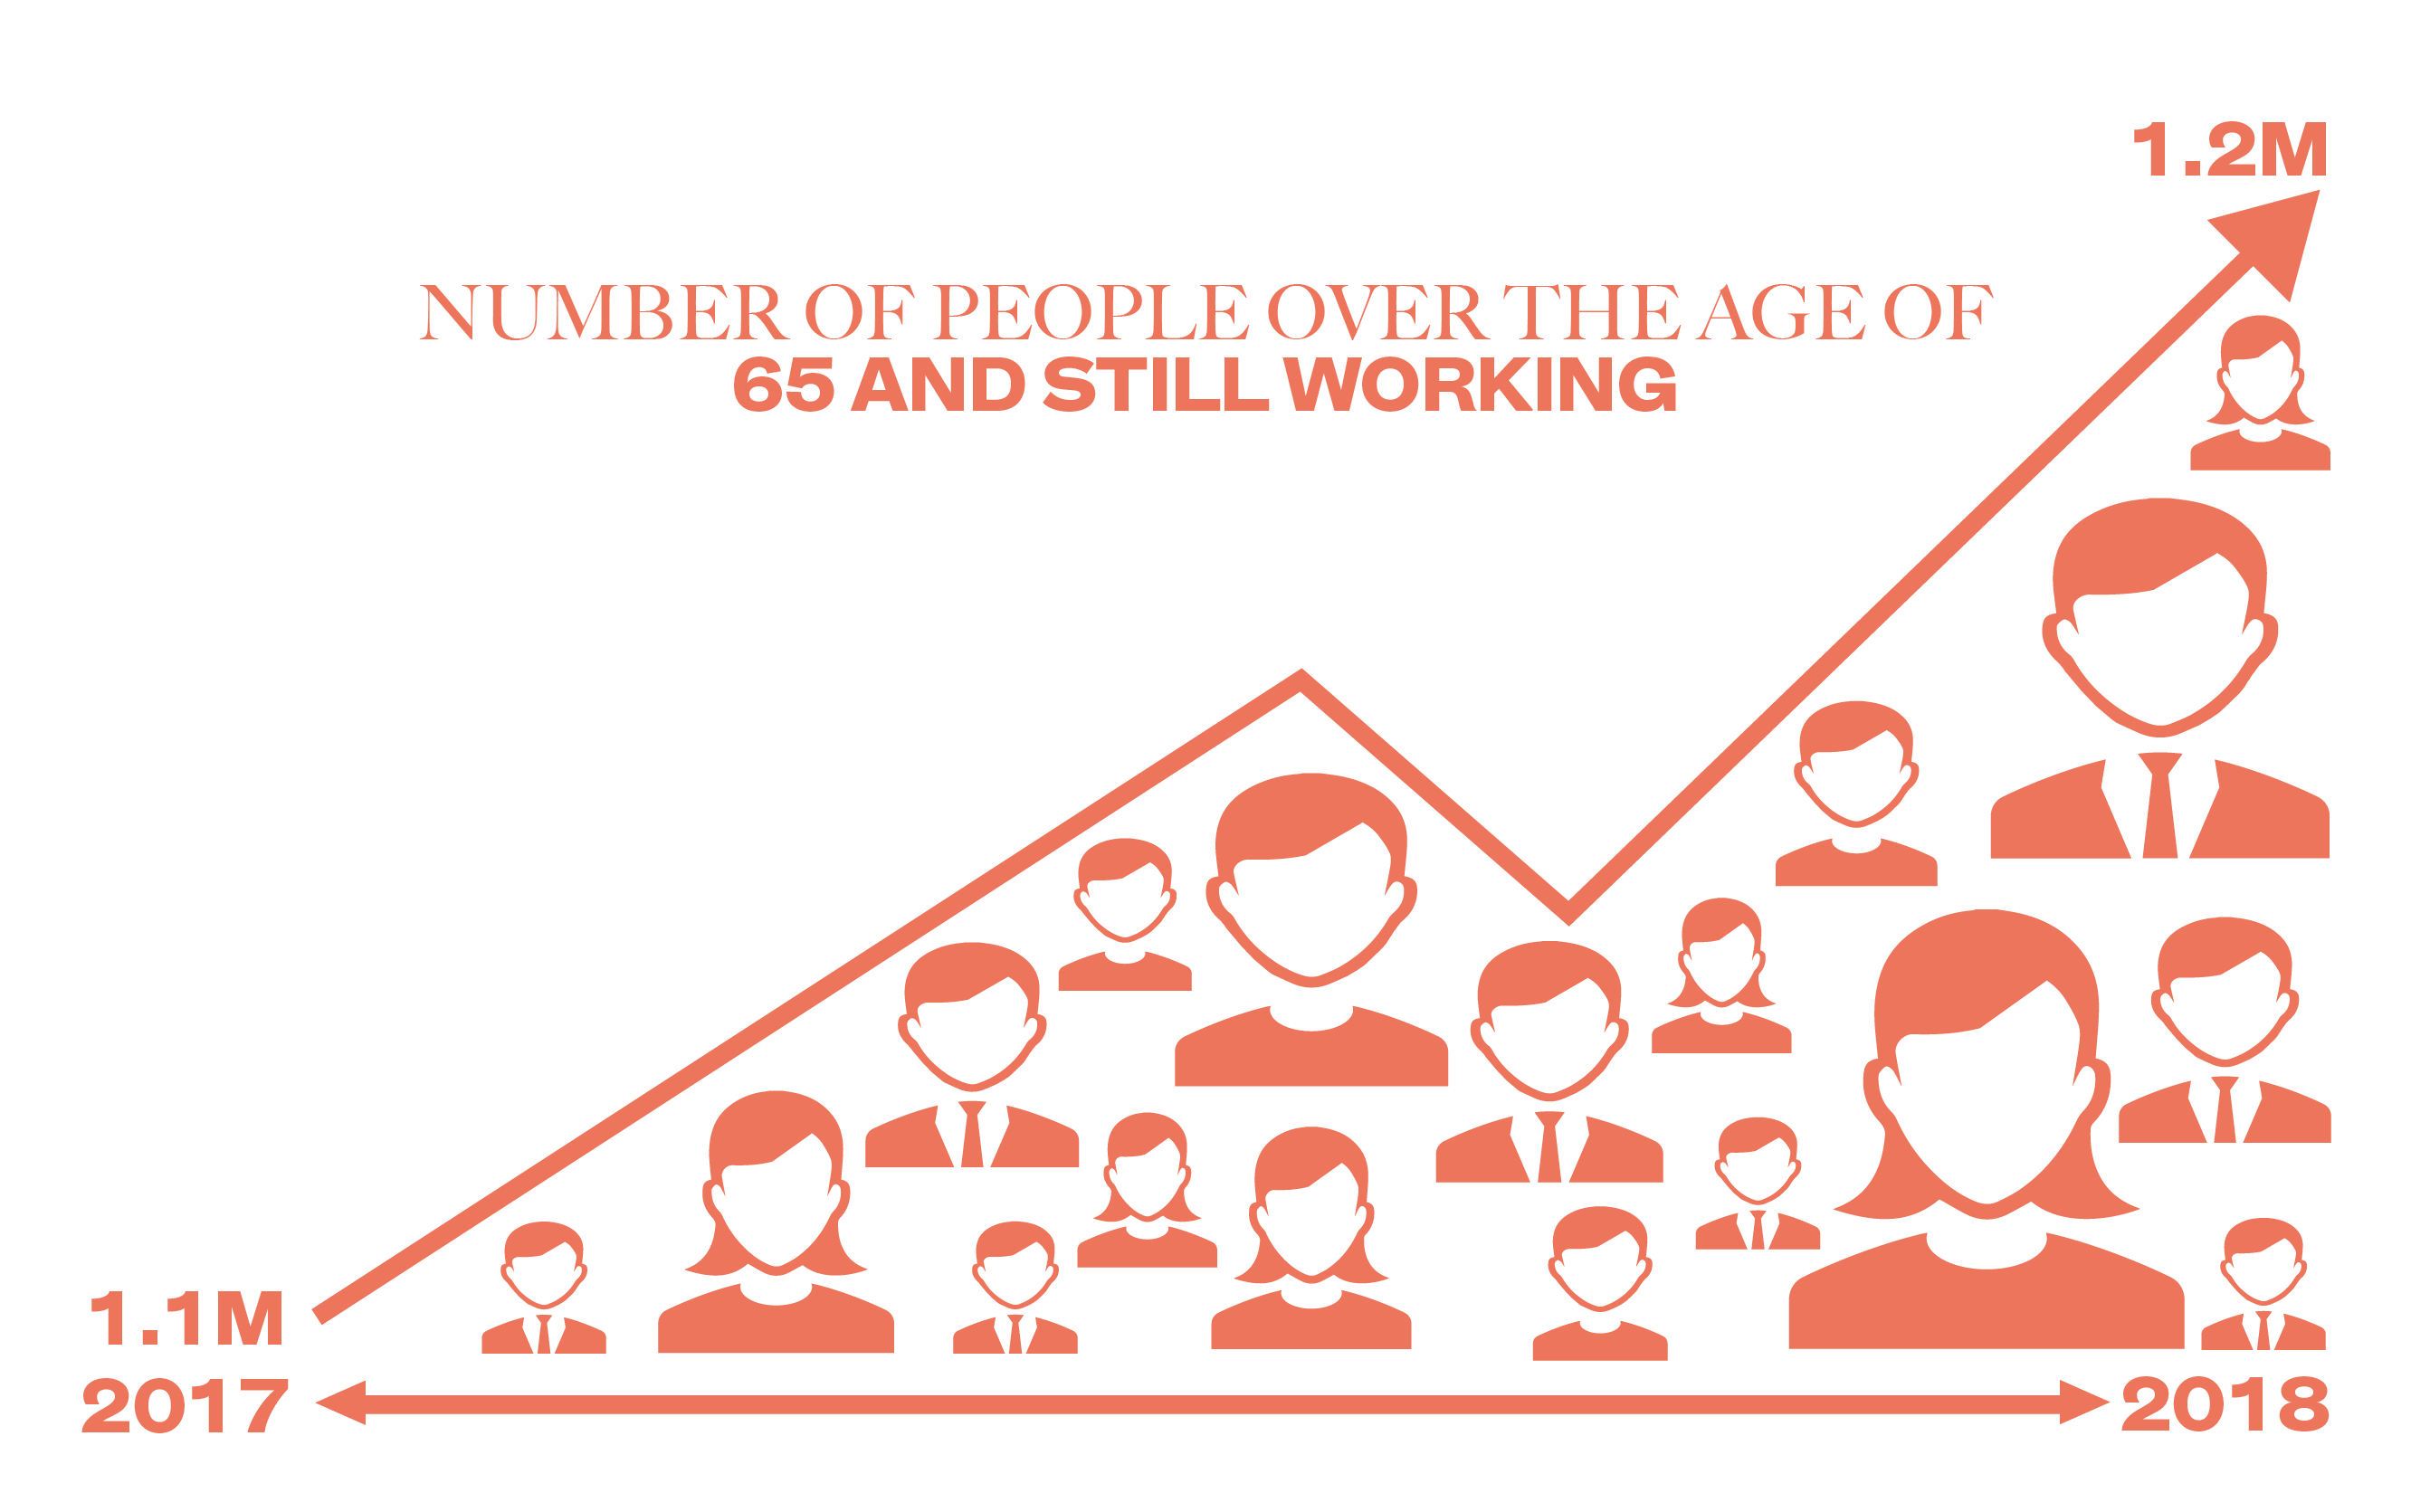 Number of people over the age of 65 and still working